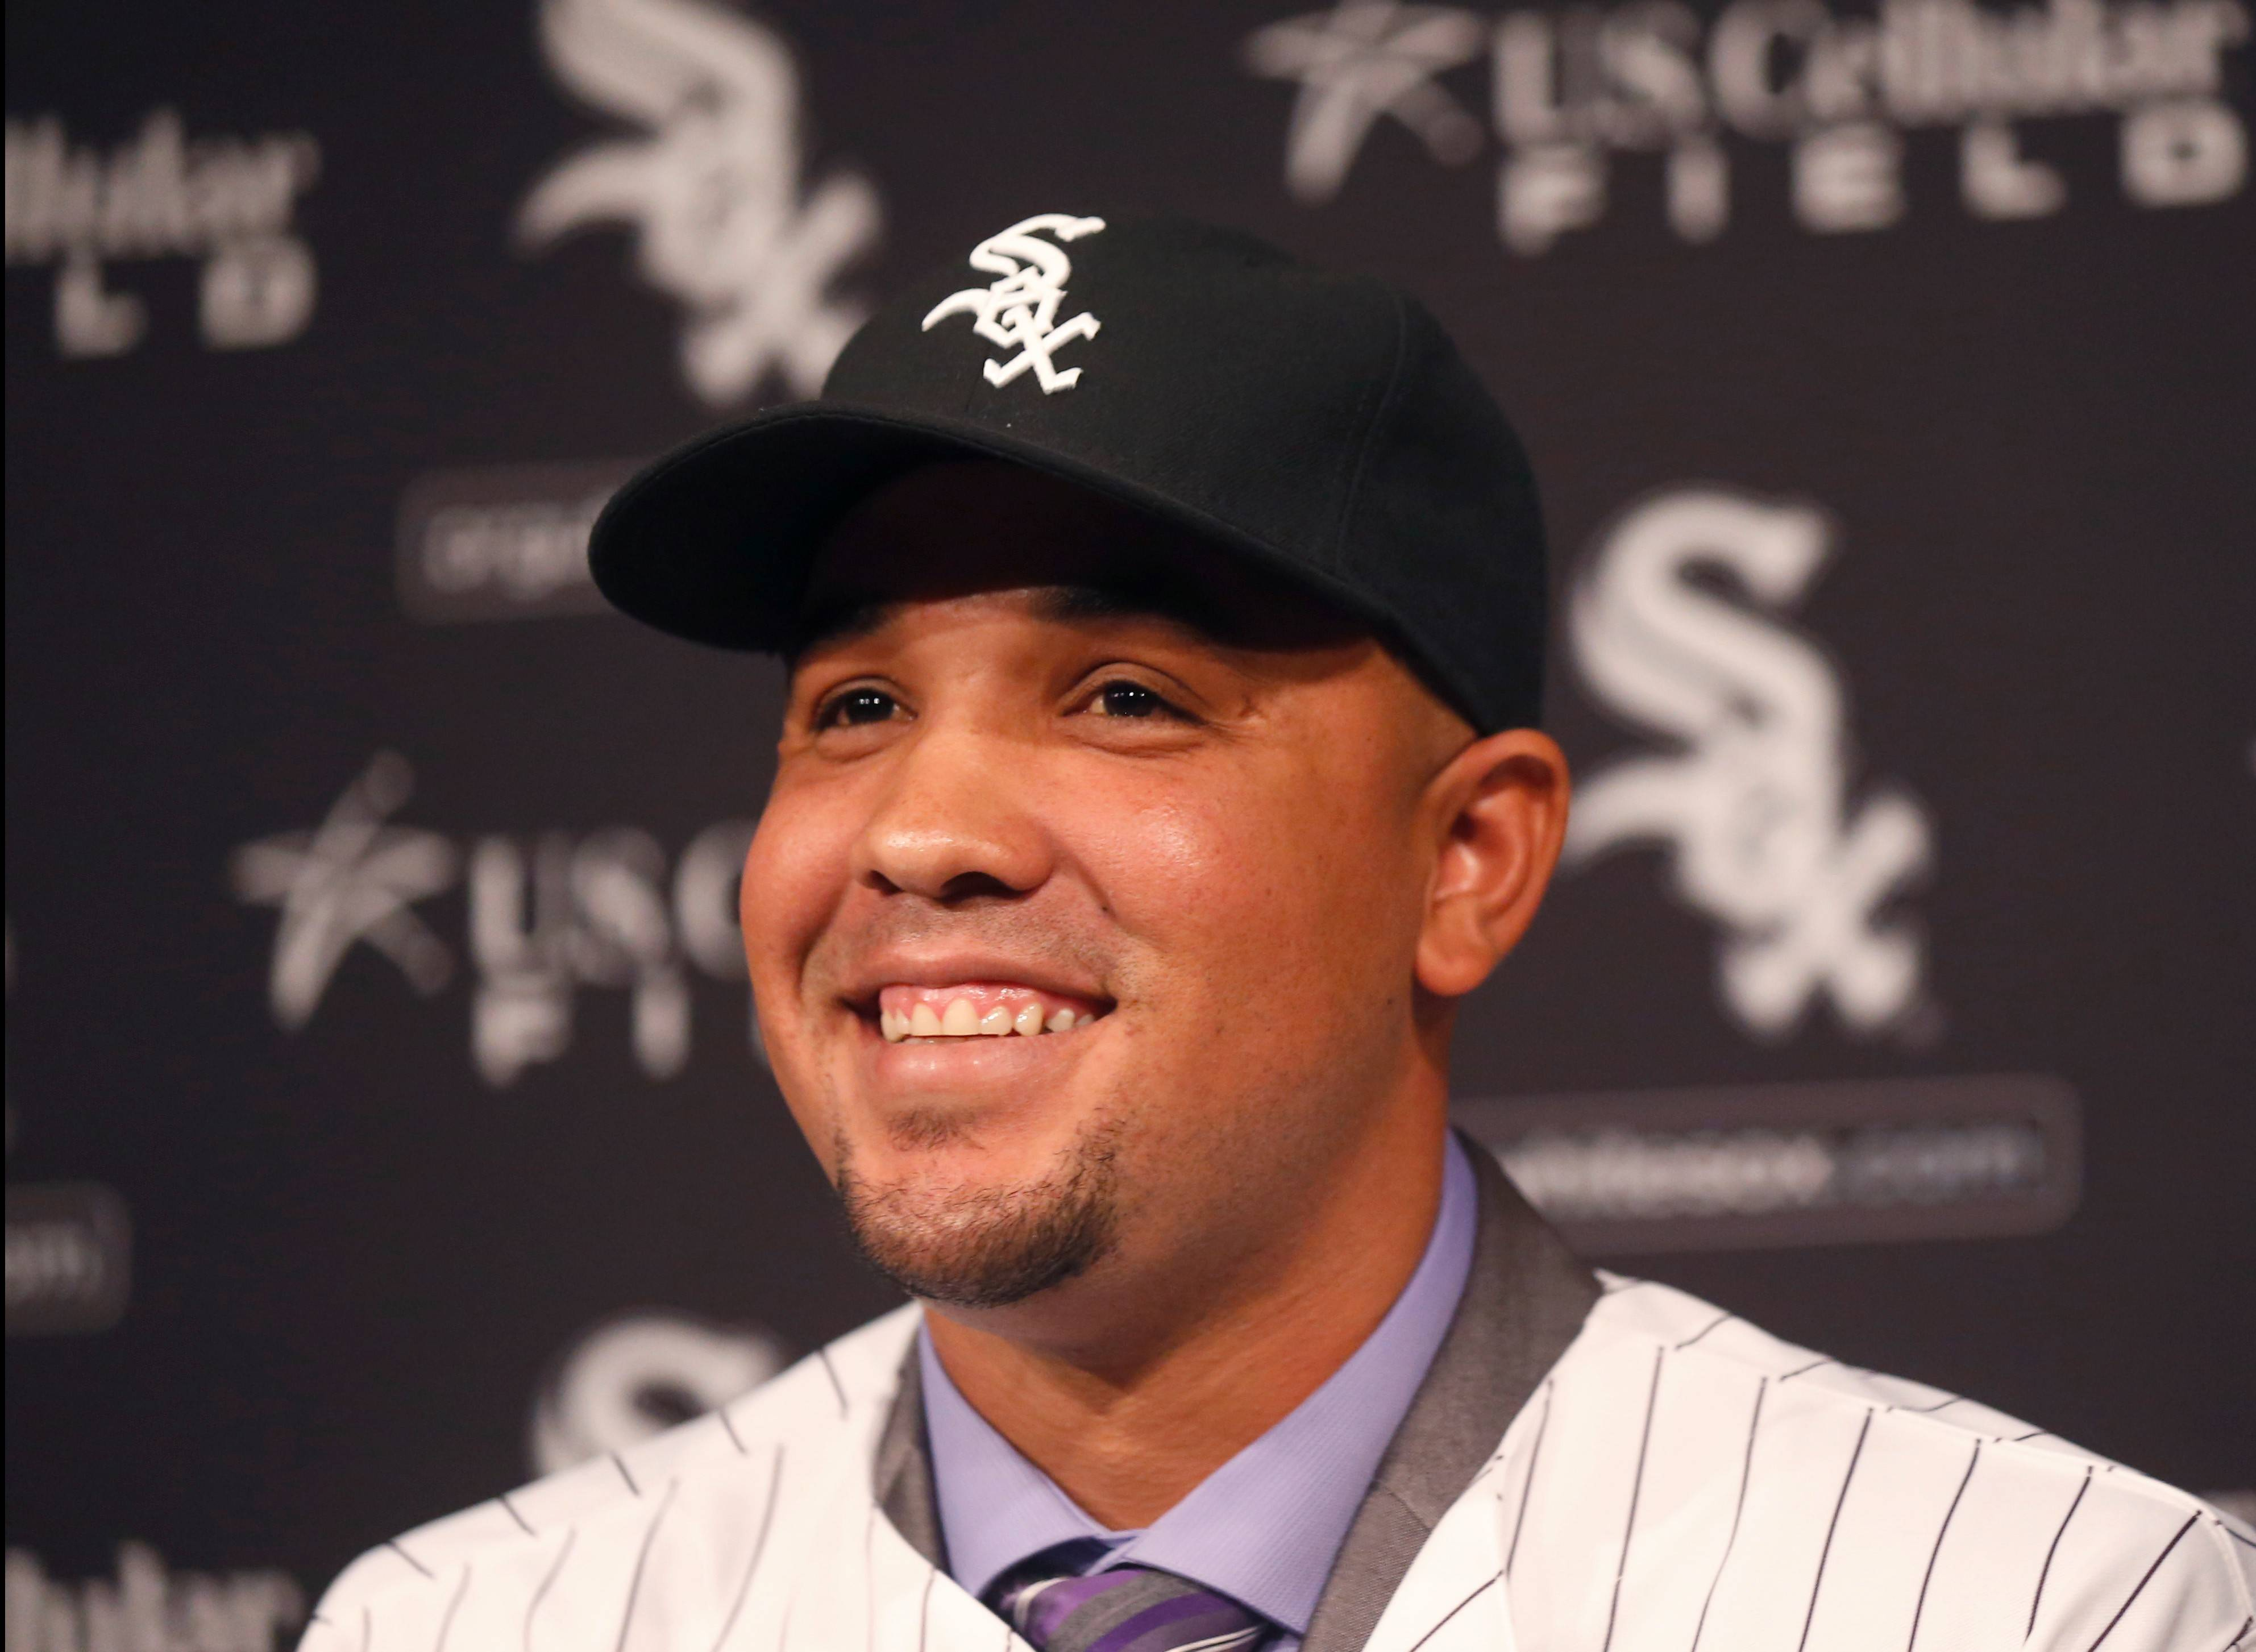 Cuban slugger Jose Abreu smiles during a news conference where the Chicago White Sox announced a six-year, $68 million deal with Abreu Tuesday, Oct. 29, 2013, in Chicago.